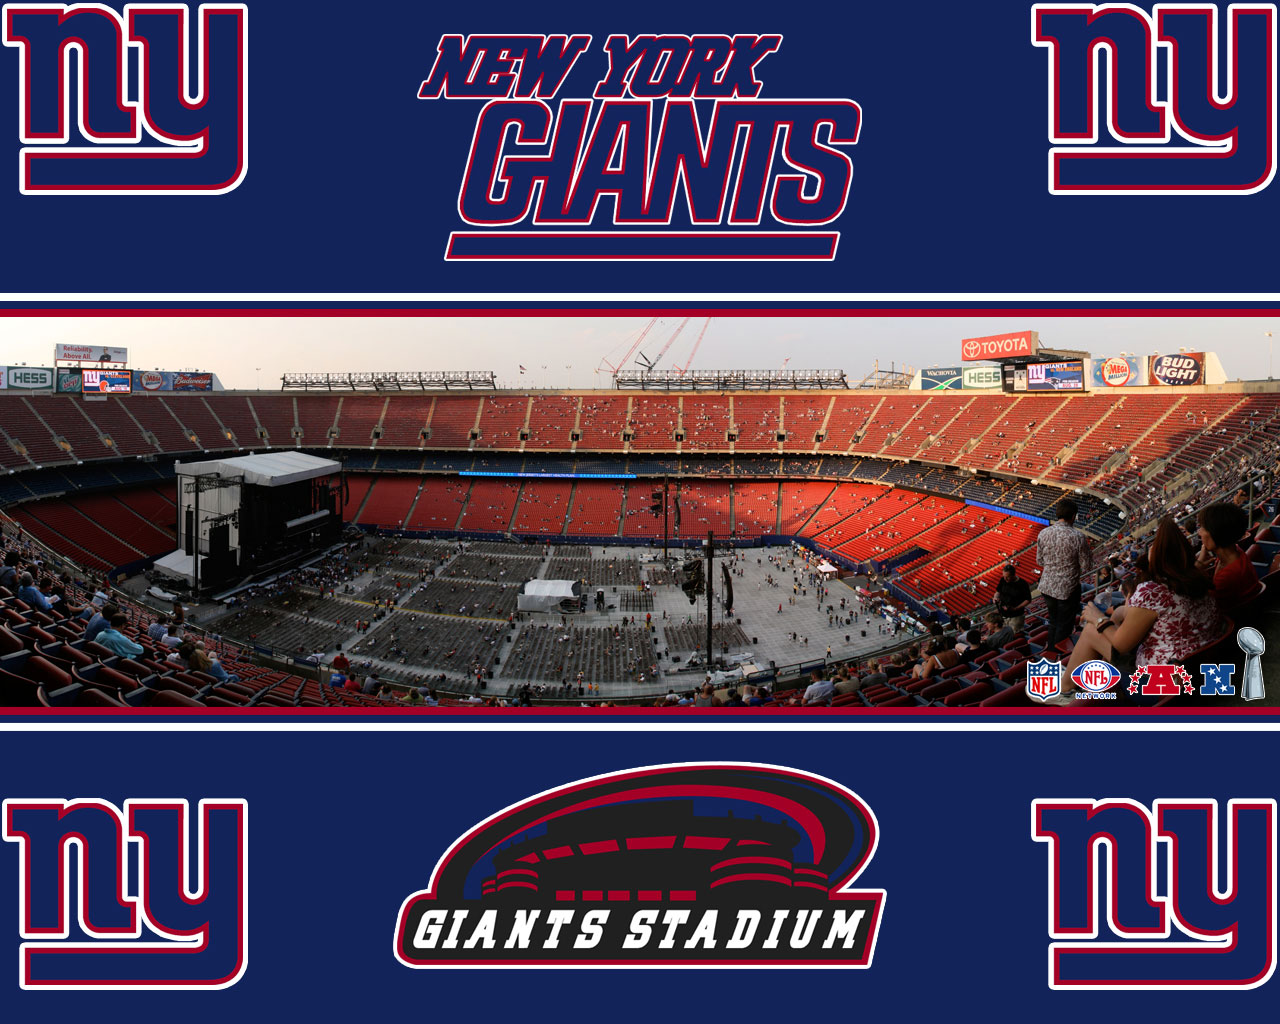 http://1.bp.blogspot.com/_bQ0SqifjNcg/S6pa872NfvI/AAAAAAAAS3g/pQZRQhUOBcI/s1600/new-york-giants-wallpaper-4.jpeg